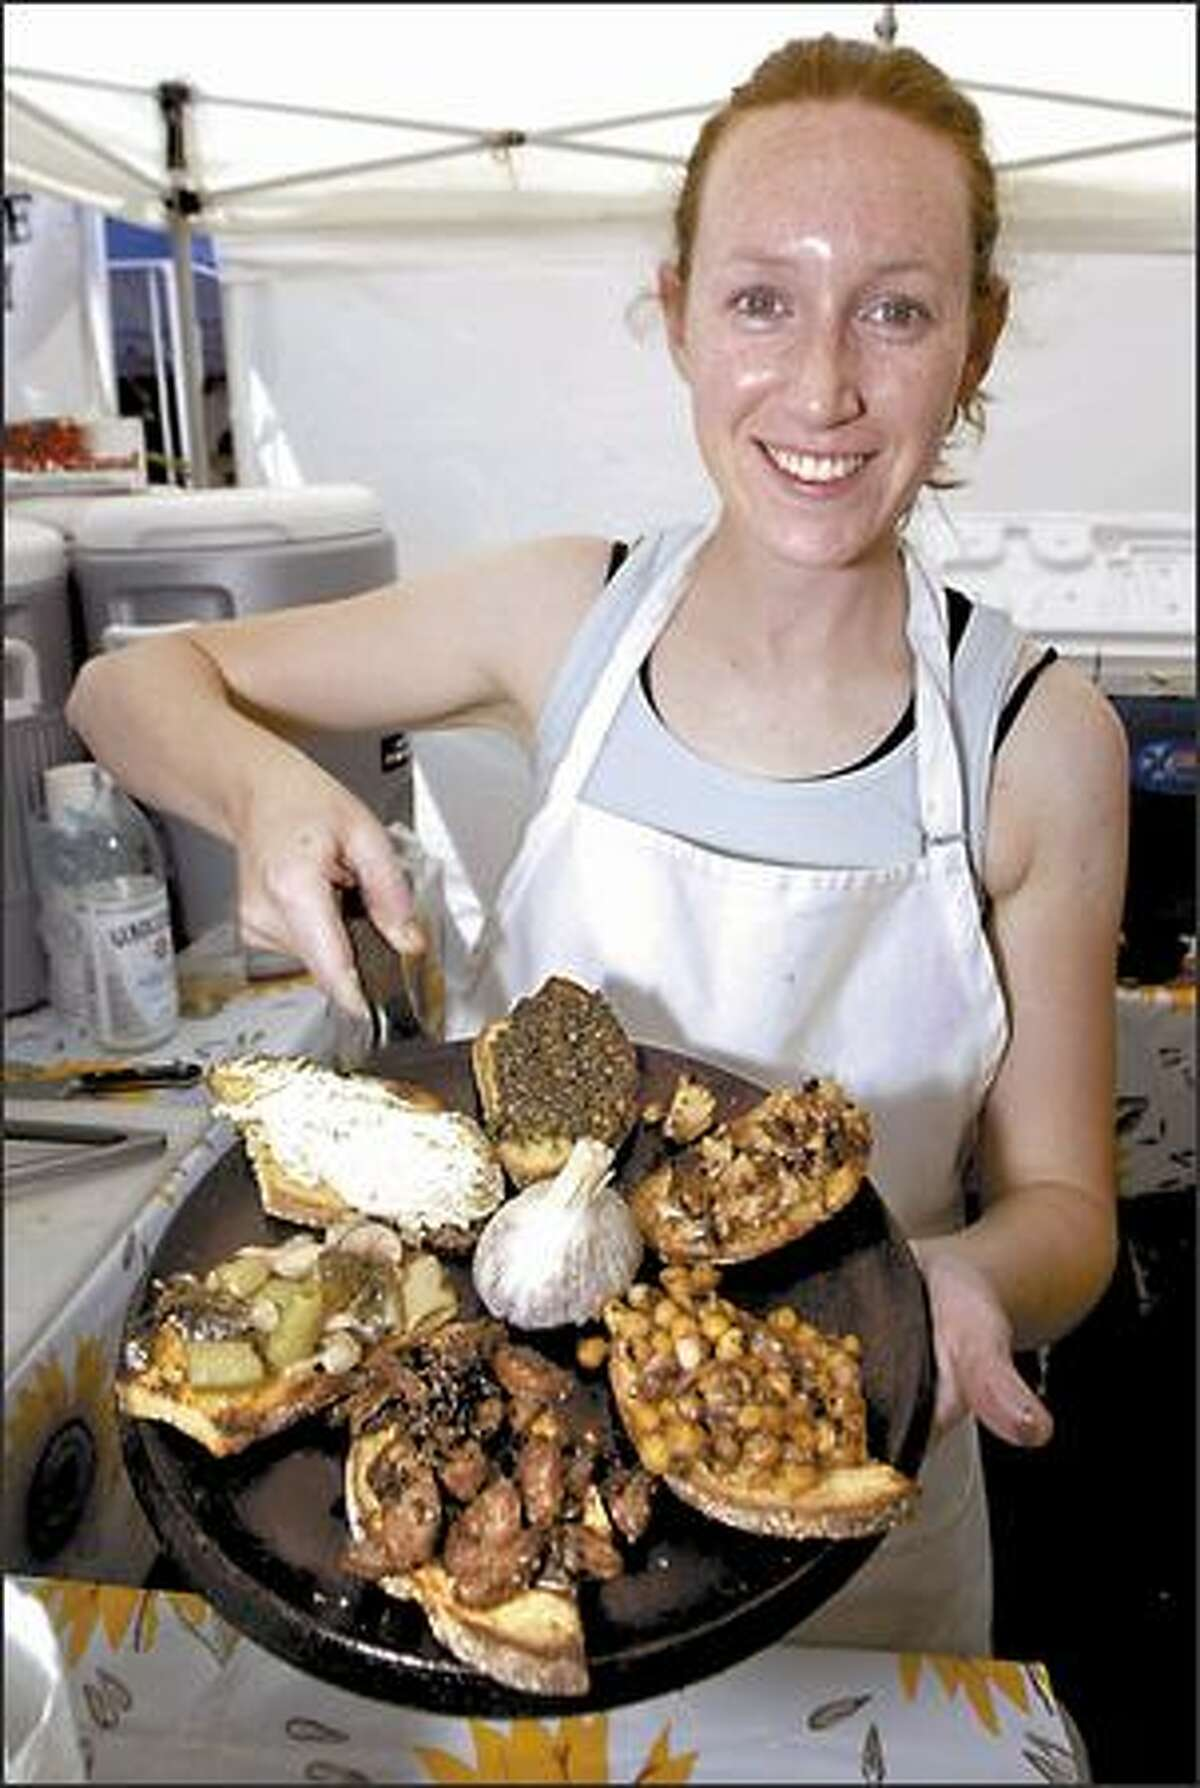 At the Ballard Farmers Market, Jennifer Mcllvaine holds an iron skillet full of grilled toasts called